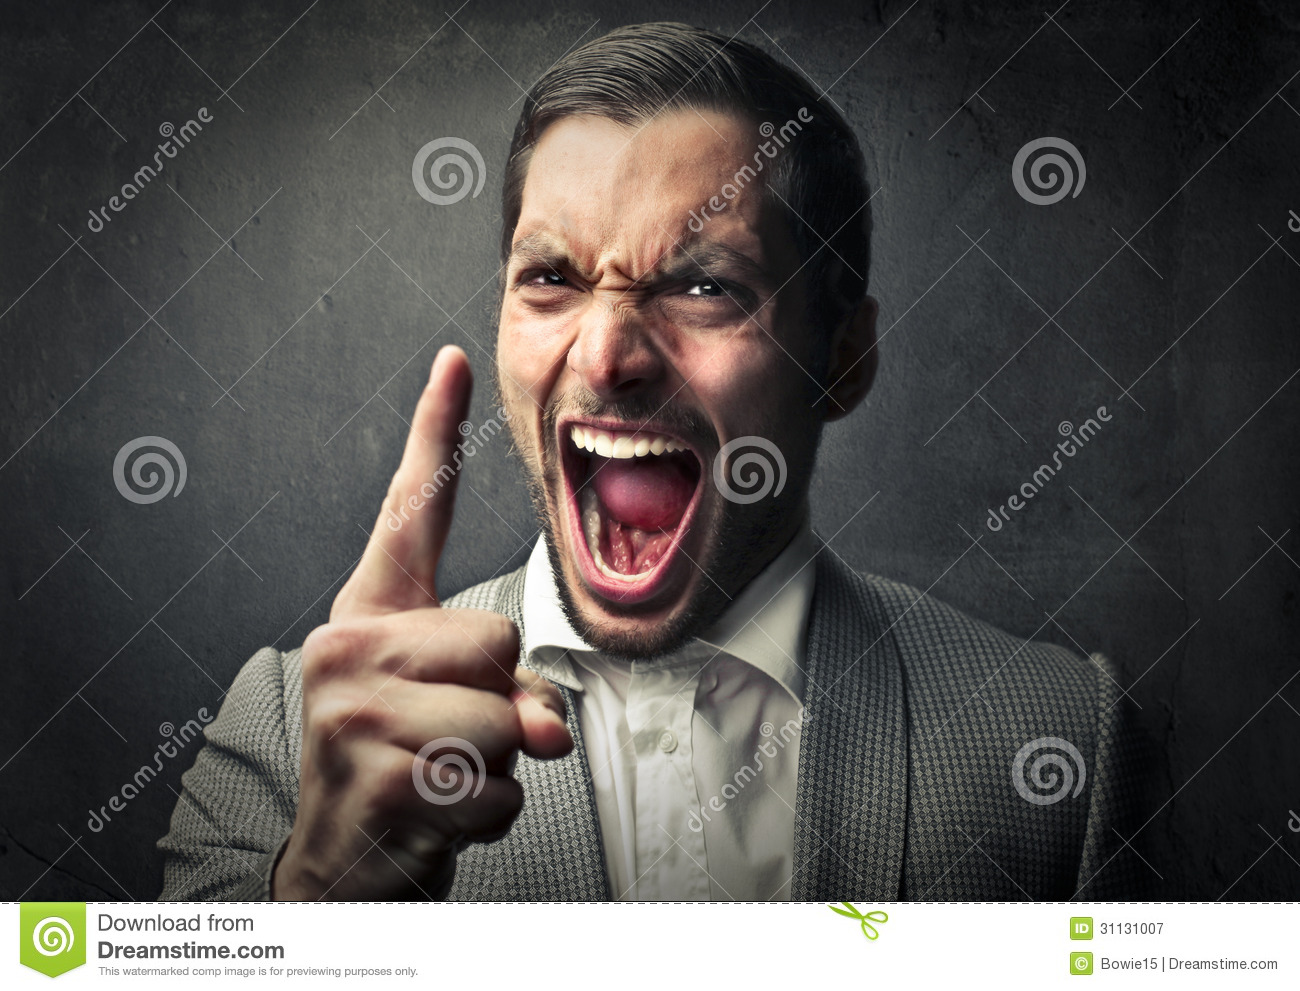 Angry man stock image. Image of expression, dark, fury ...